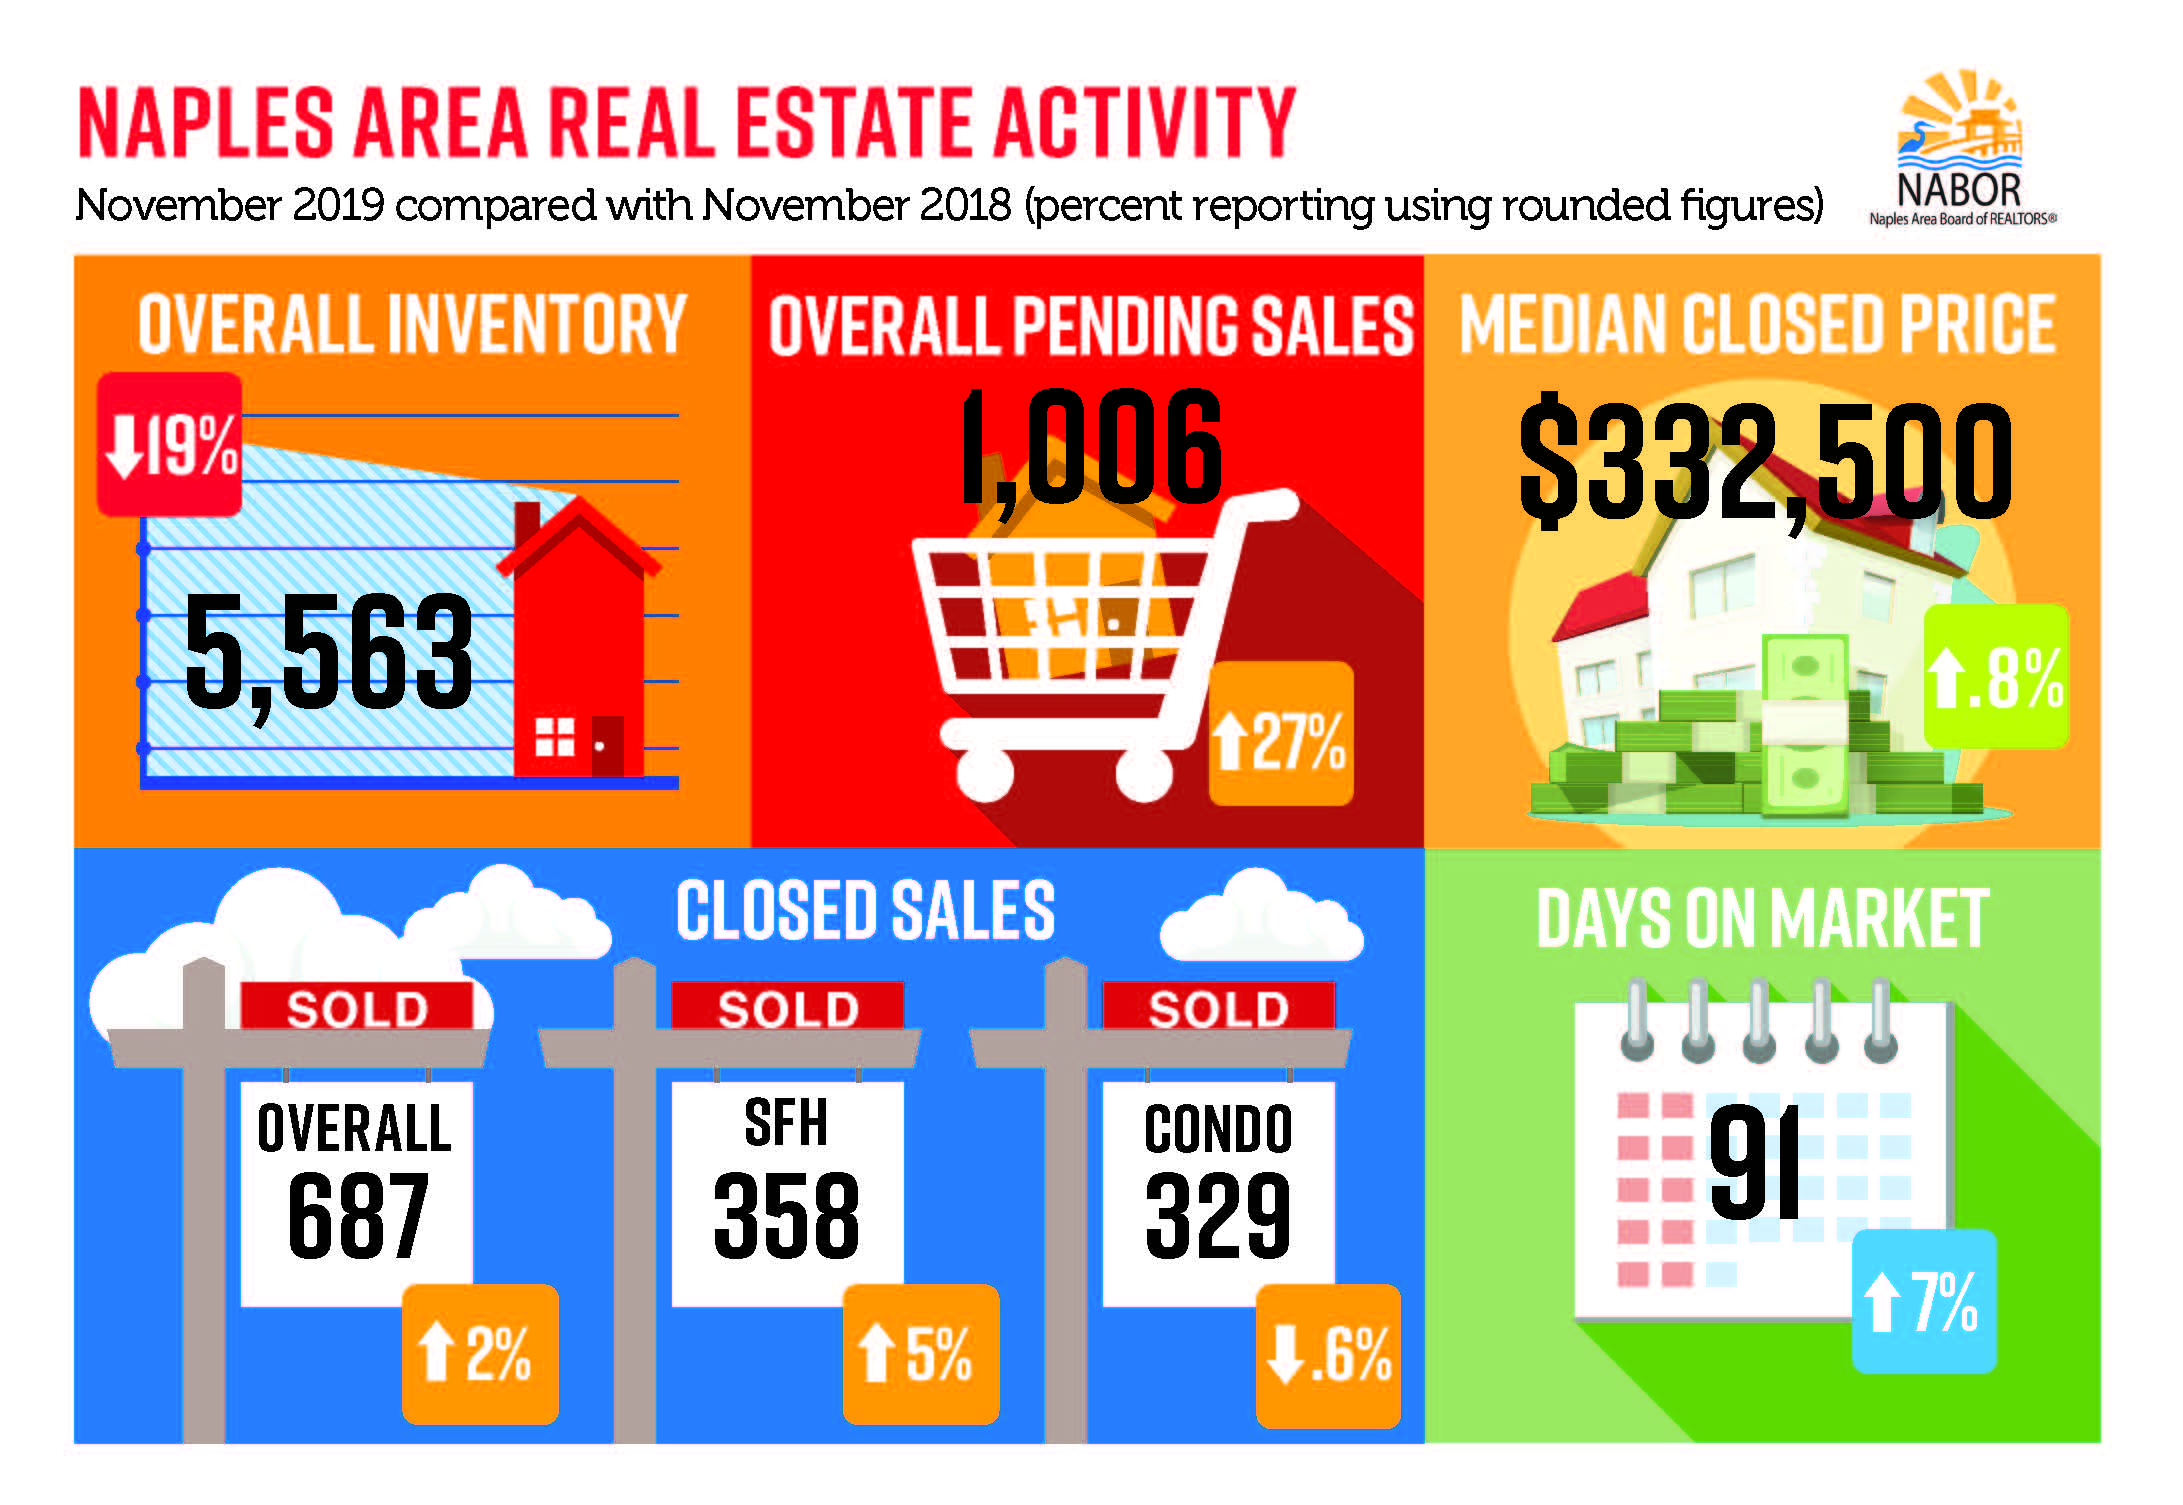 Infographic for the Naples market area from NABOR and NaplesArea.com